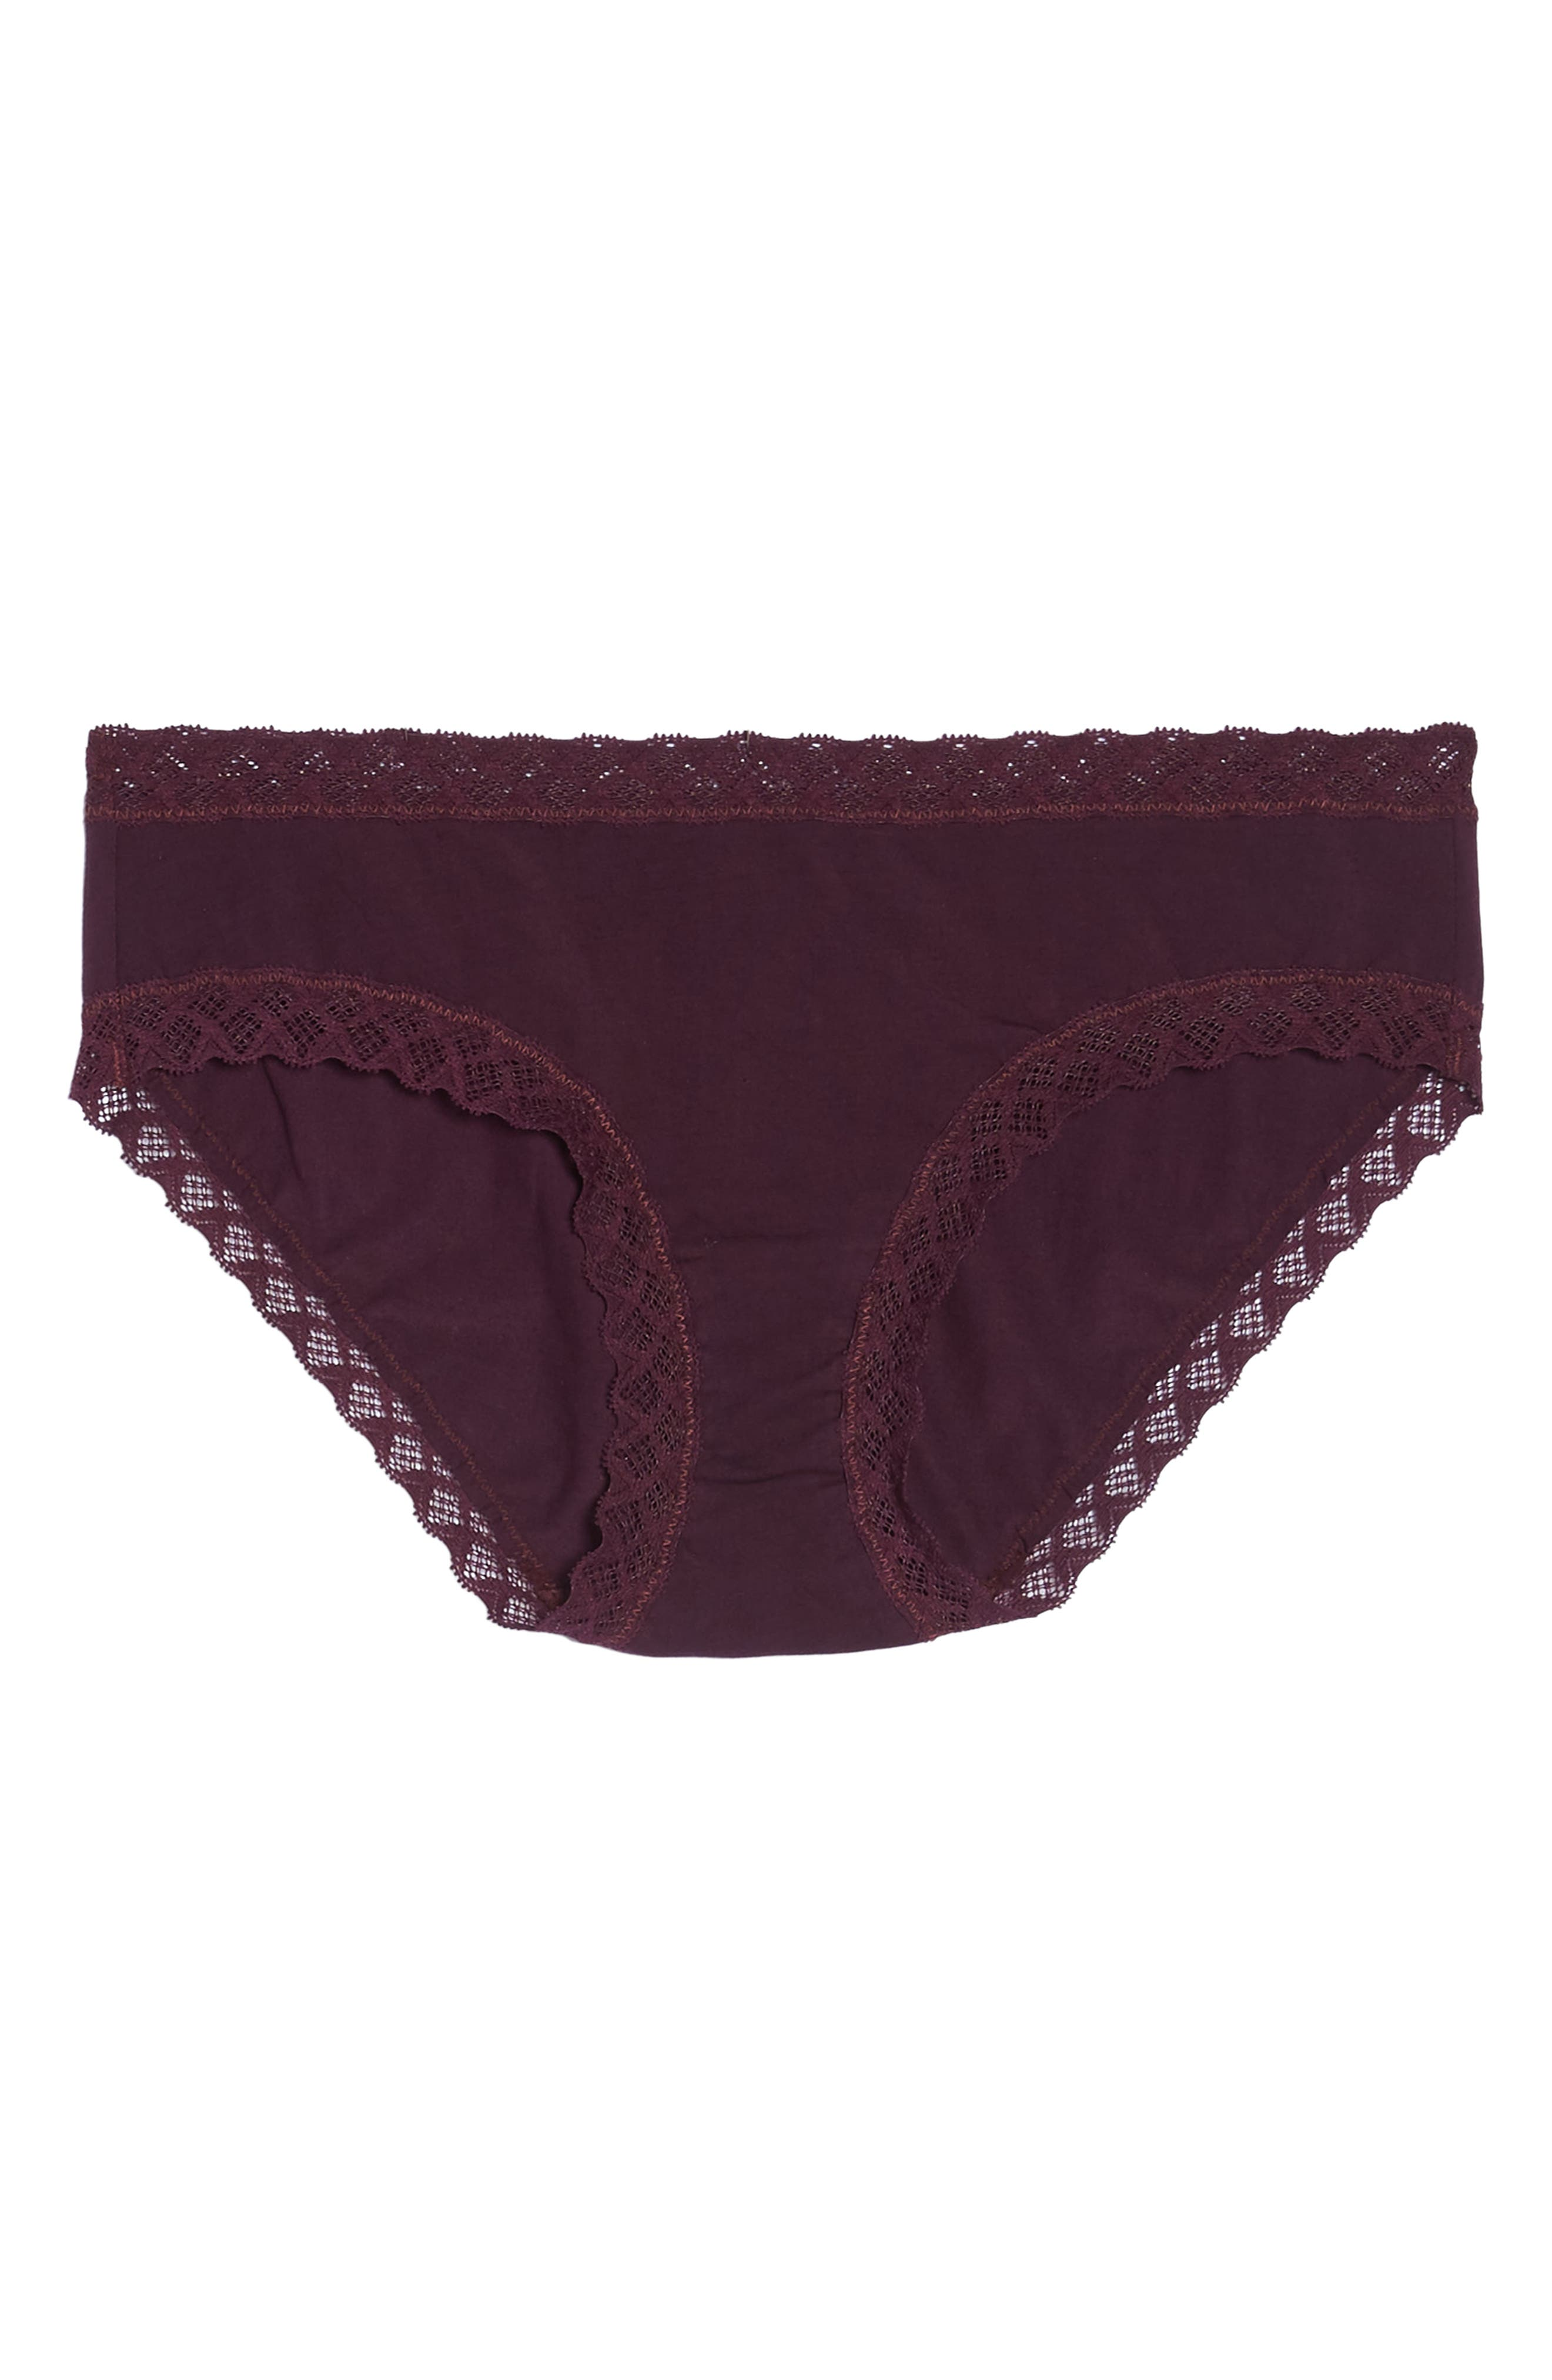 Bliss Cotton Girl Briefs,                             Alternate thumbnail 6, color,                             Potent Purple